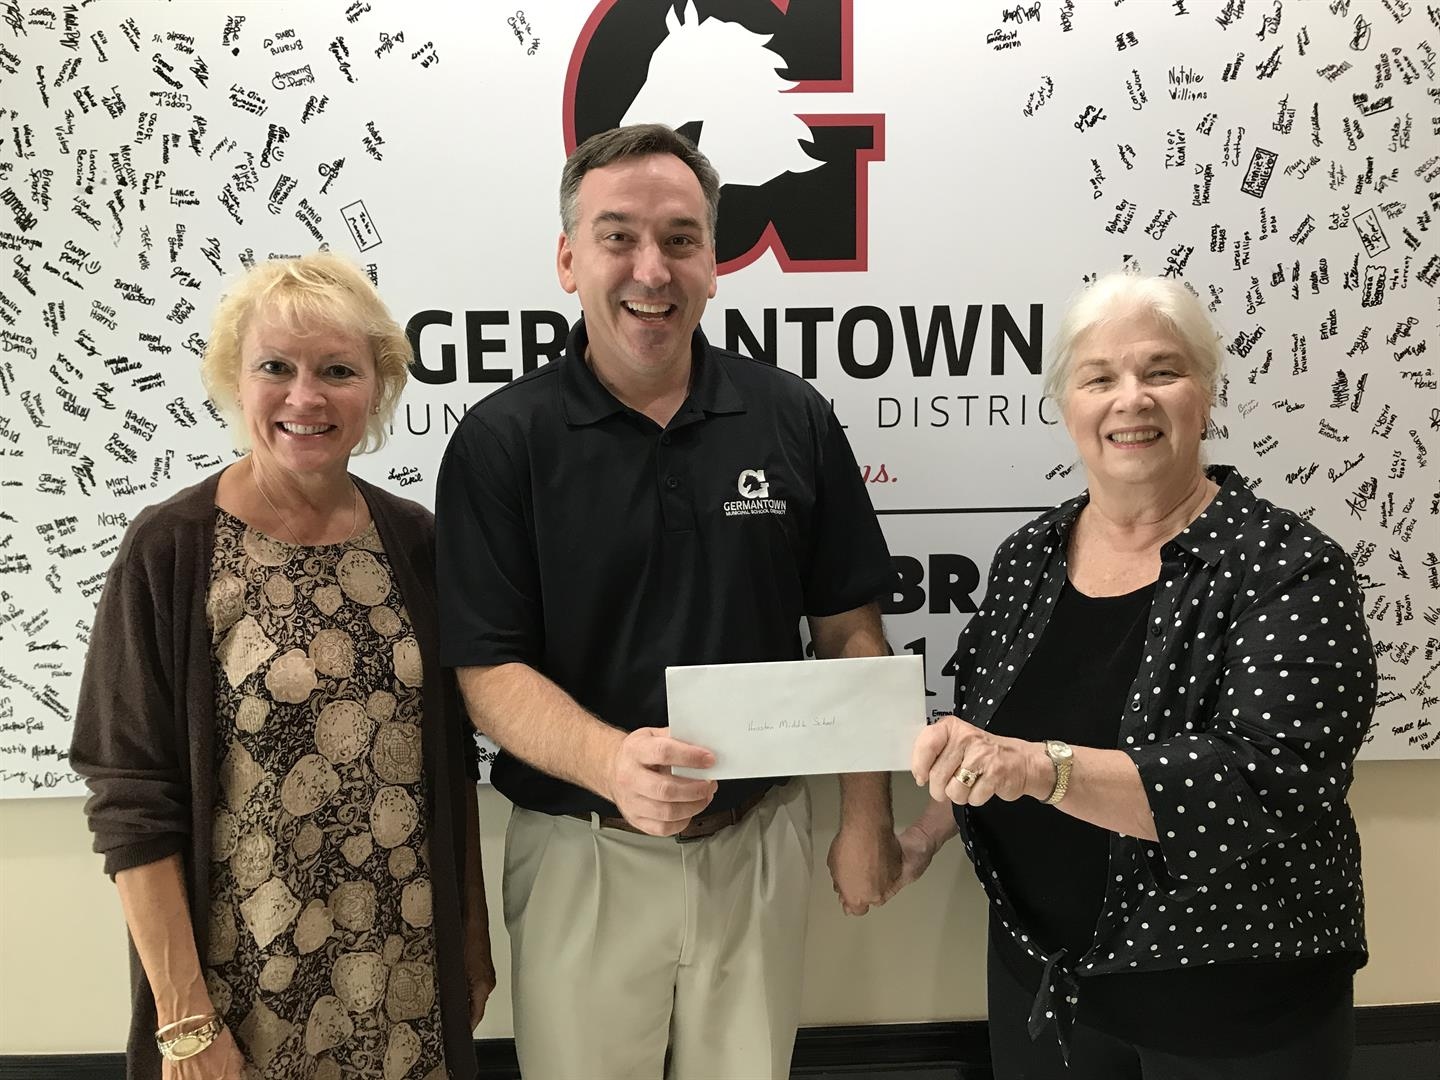 Germantown Women's Club hands a check to the Superintendent.